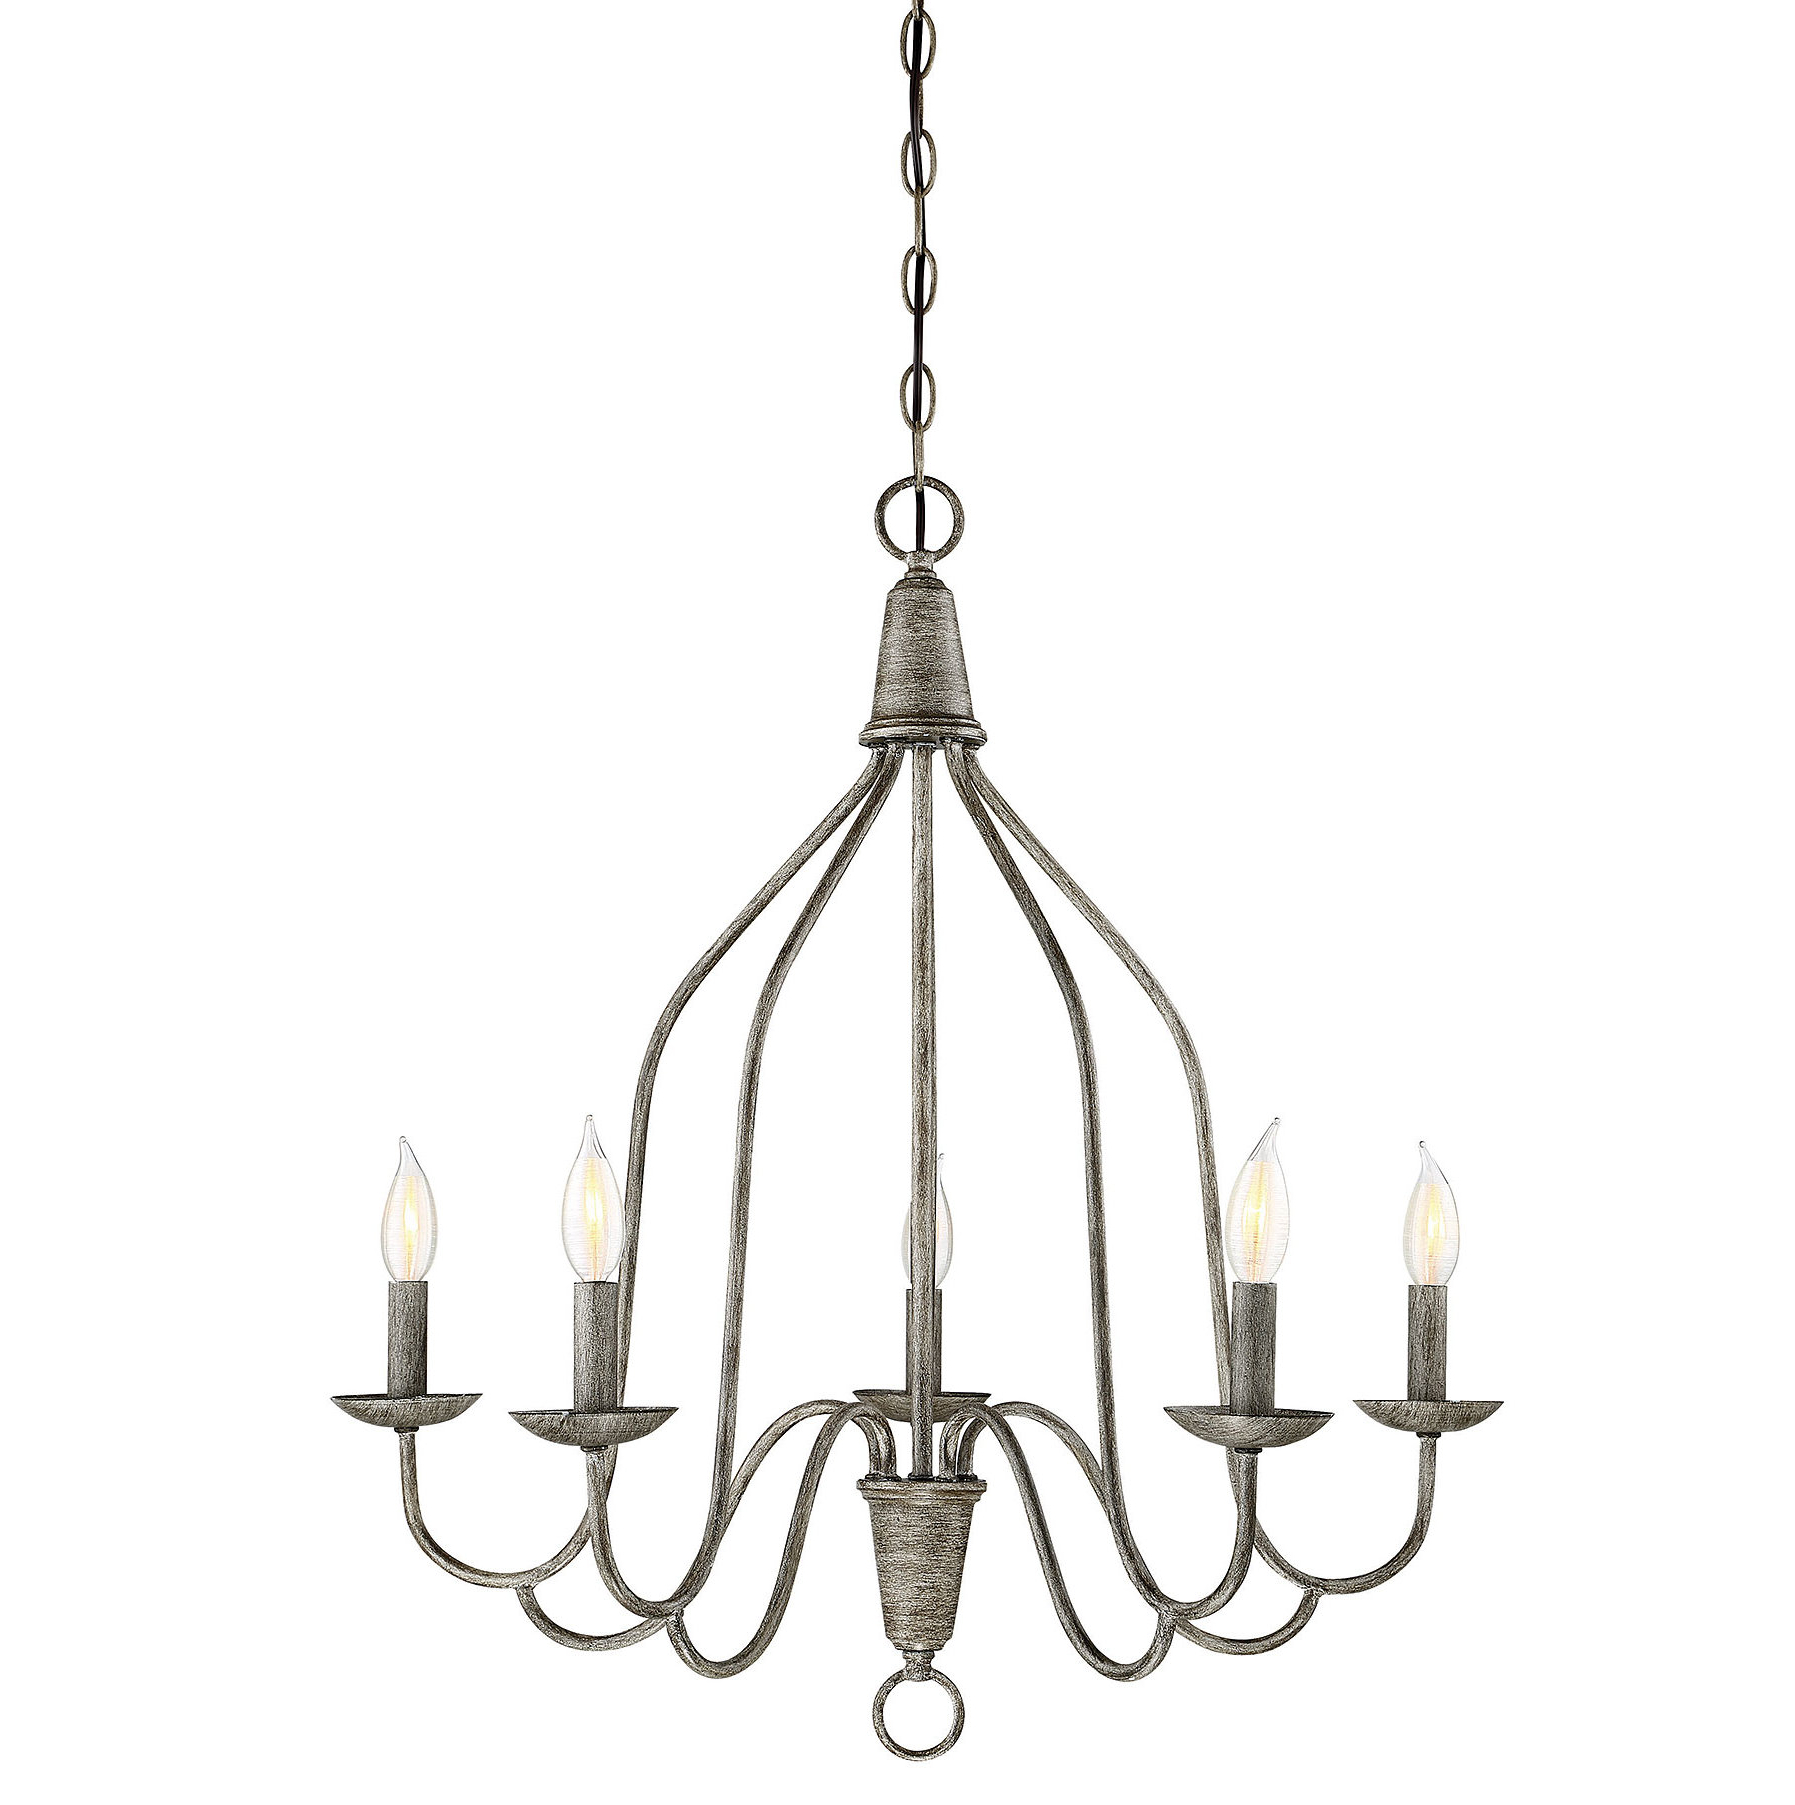 Florentina 5 Light Candle Style Chandeliers Inside Well Known Geeta 5 Light Candle Style Chandelier (View 9 of 20)